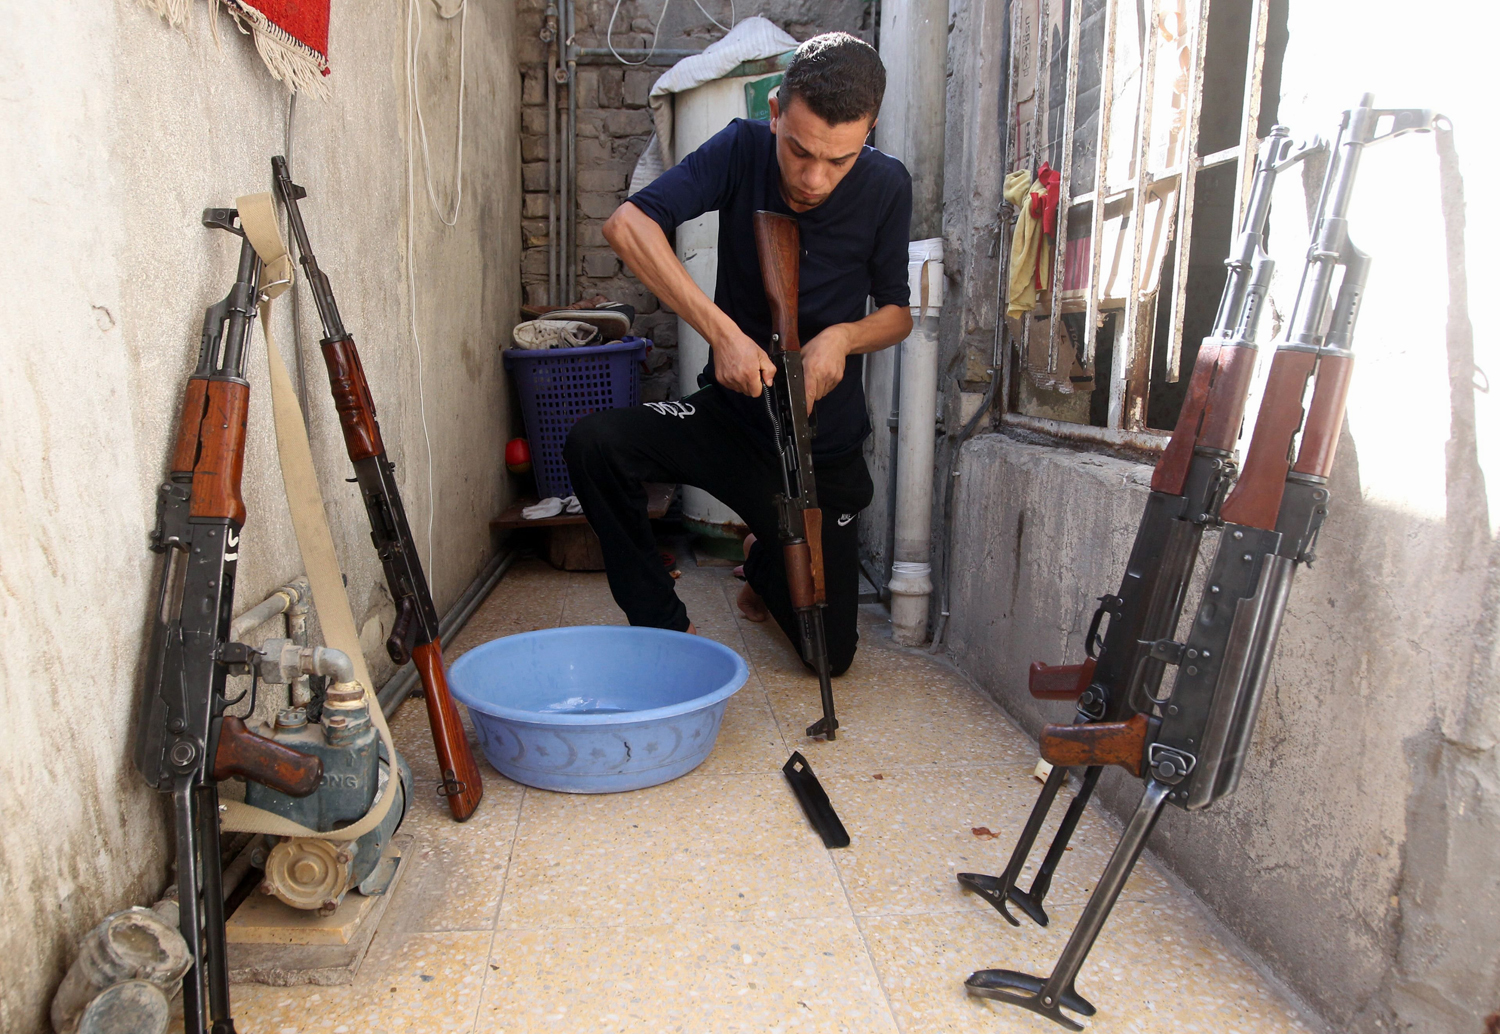 A Shiite man cleans weapons as he gets ready to defend his Sadr City district in case of an attack by Sunni extremists, on June 13 in Baghdad.